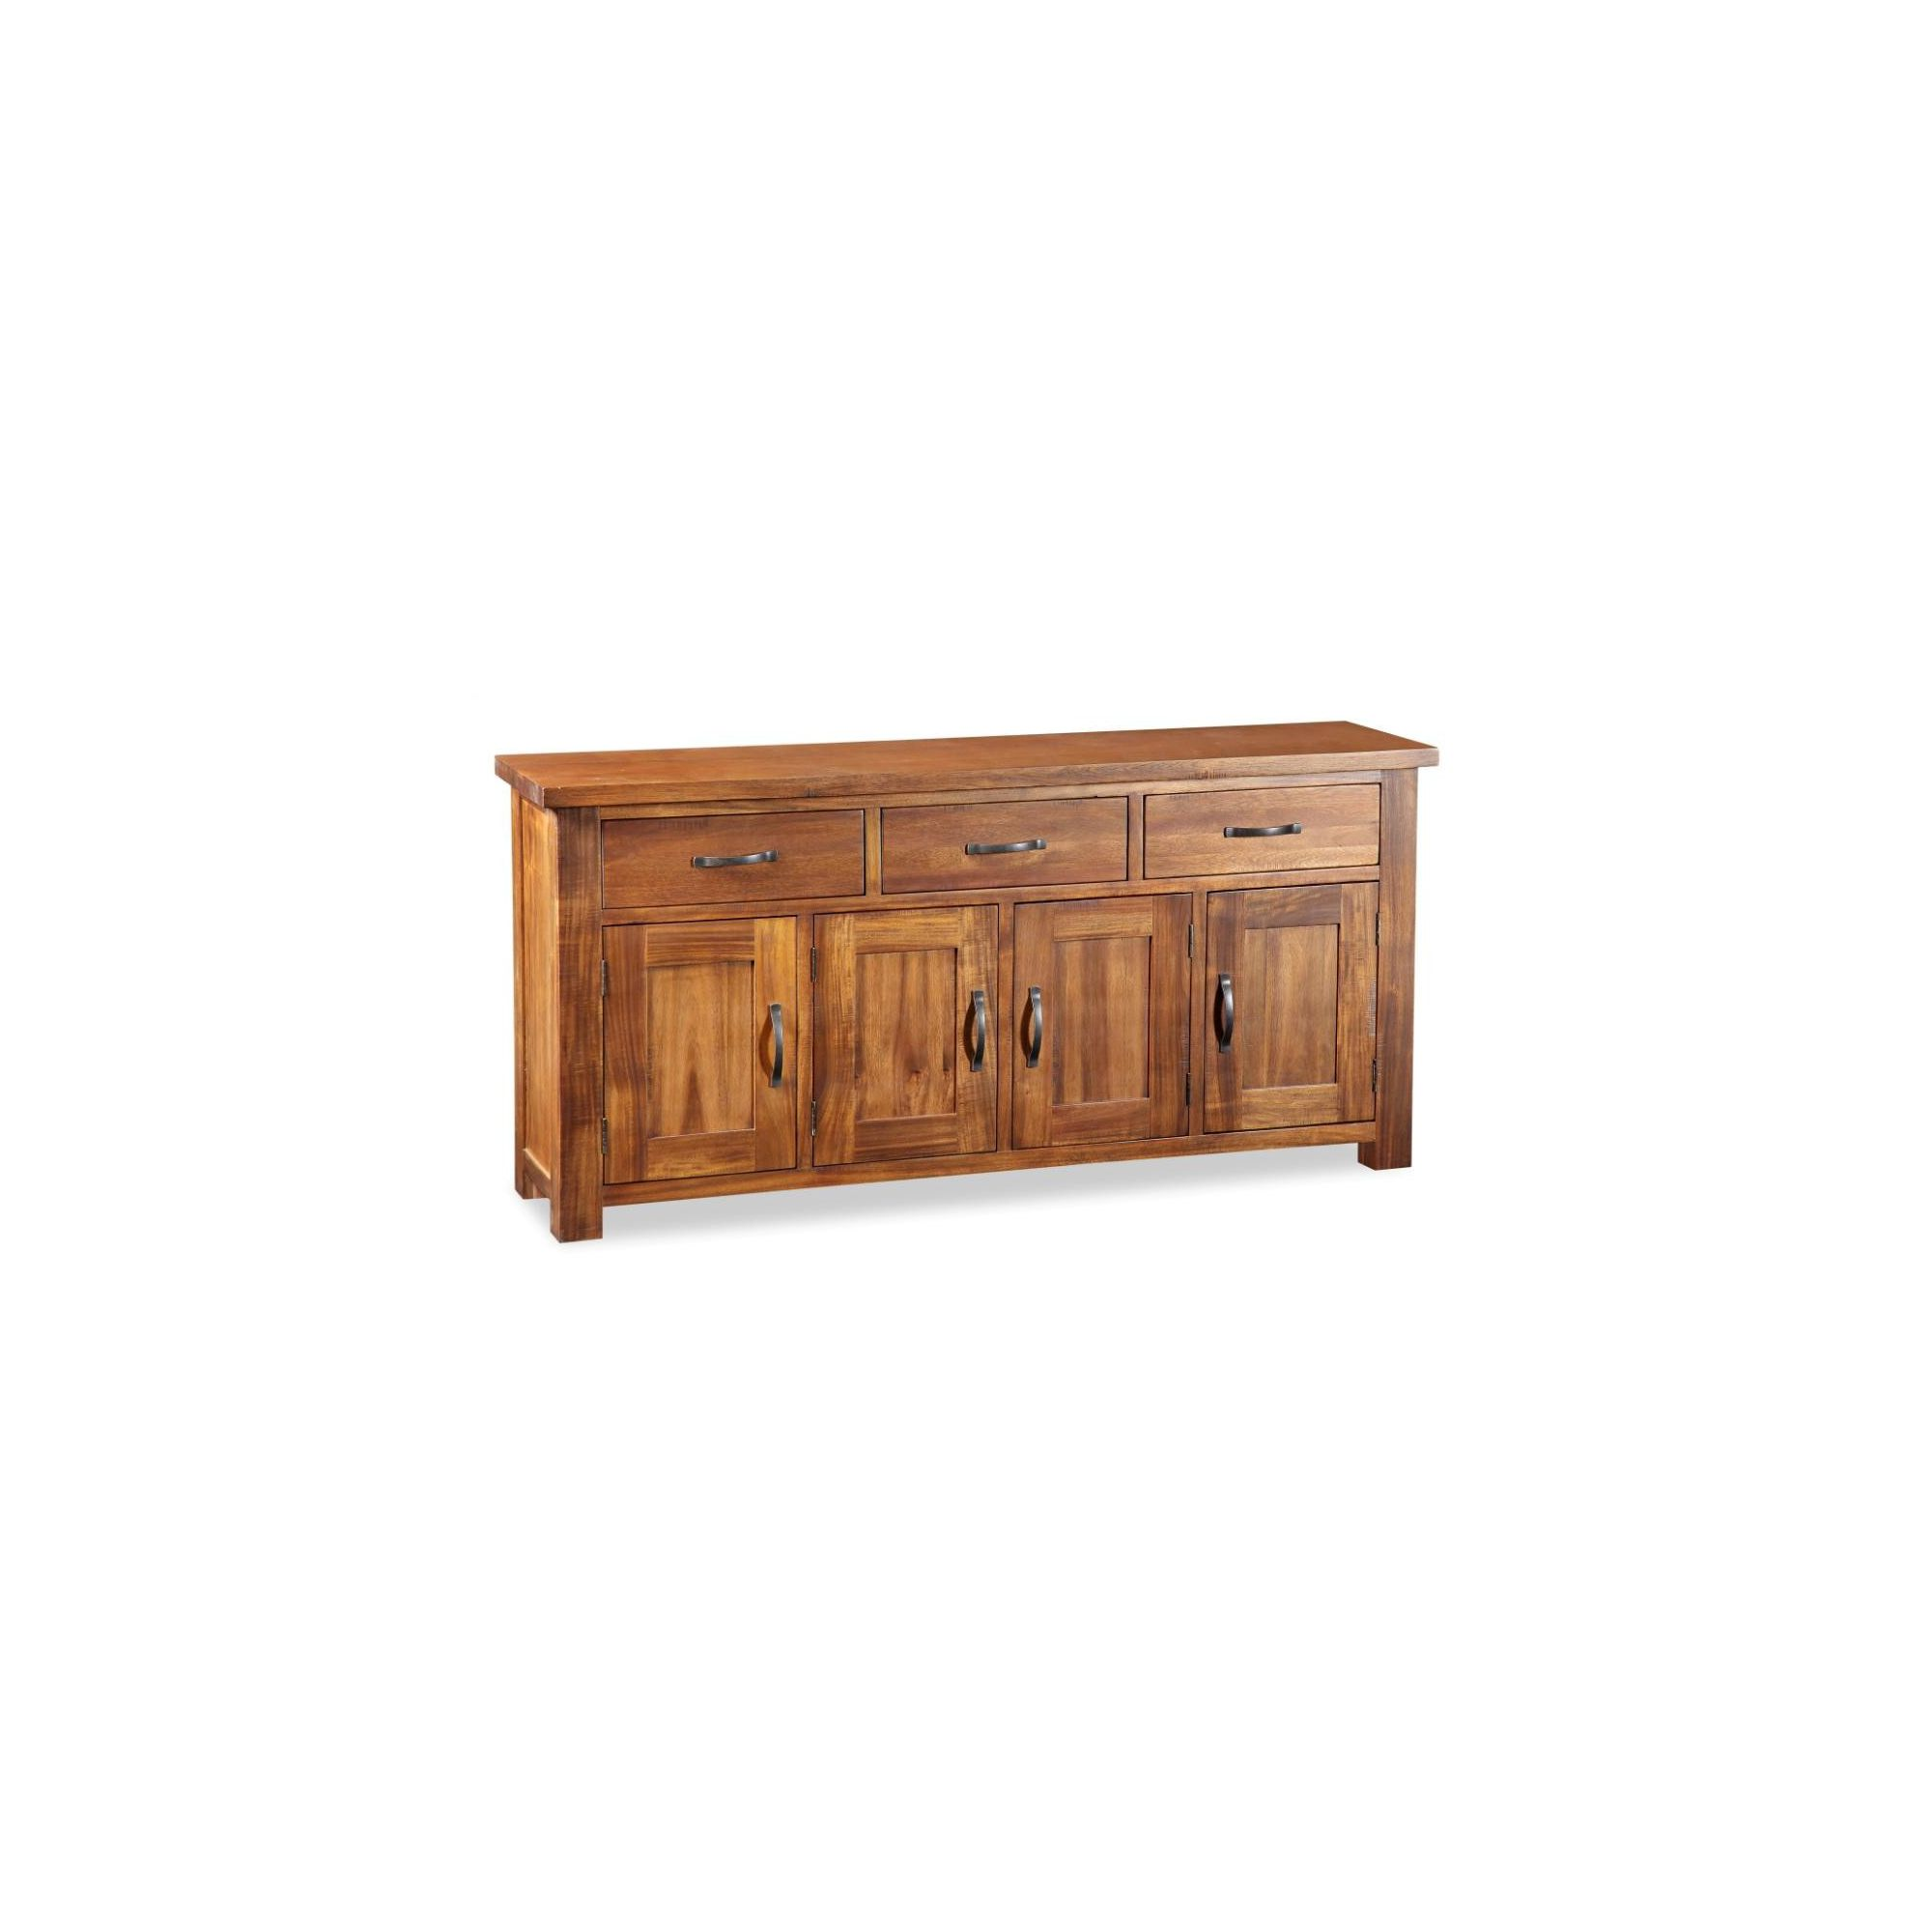 Alterton Furniture Romain Sideboard at Tesco Direct